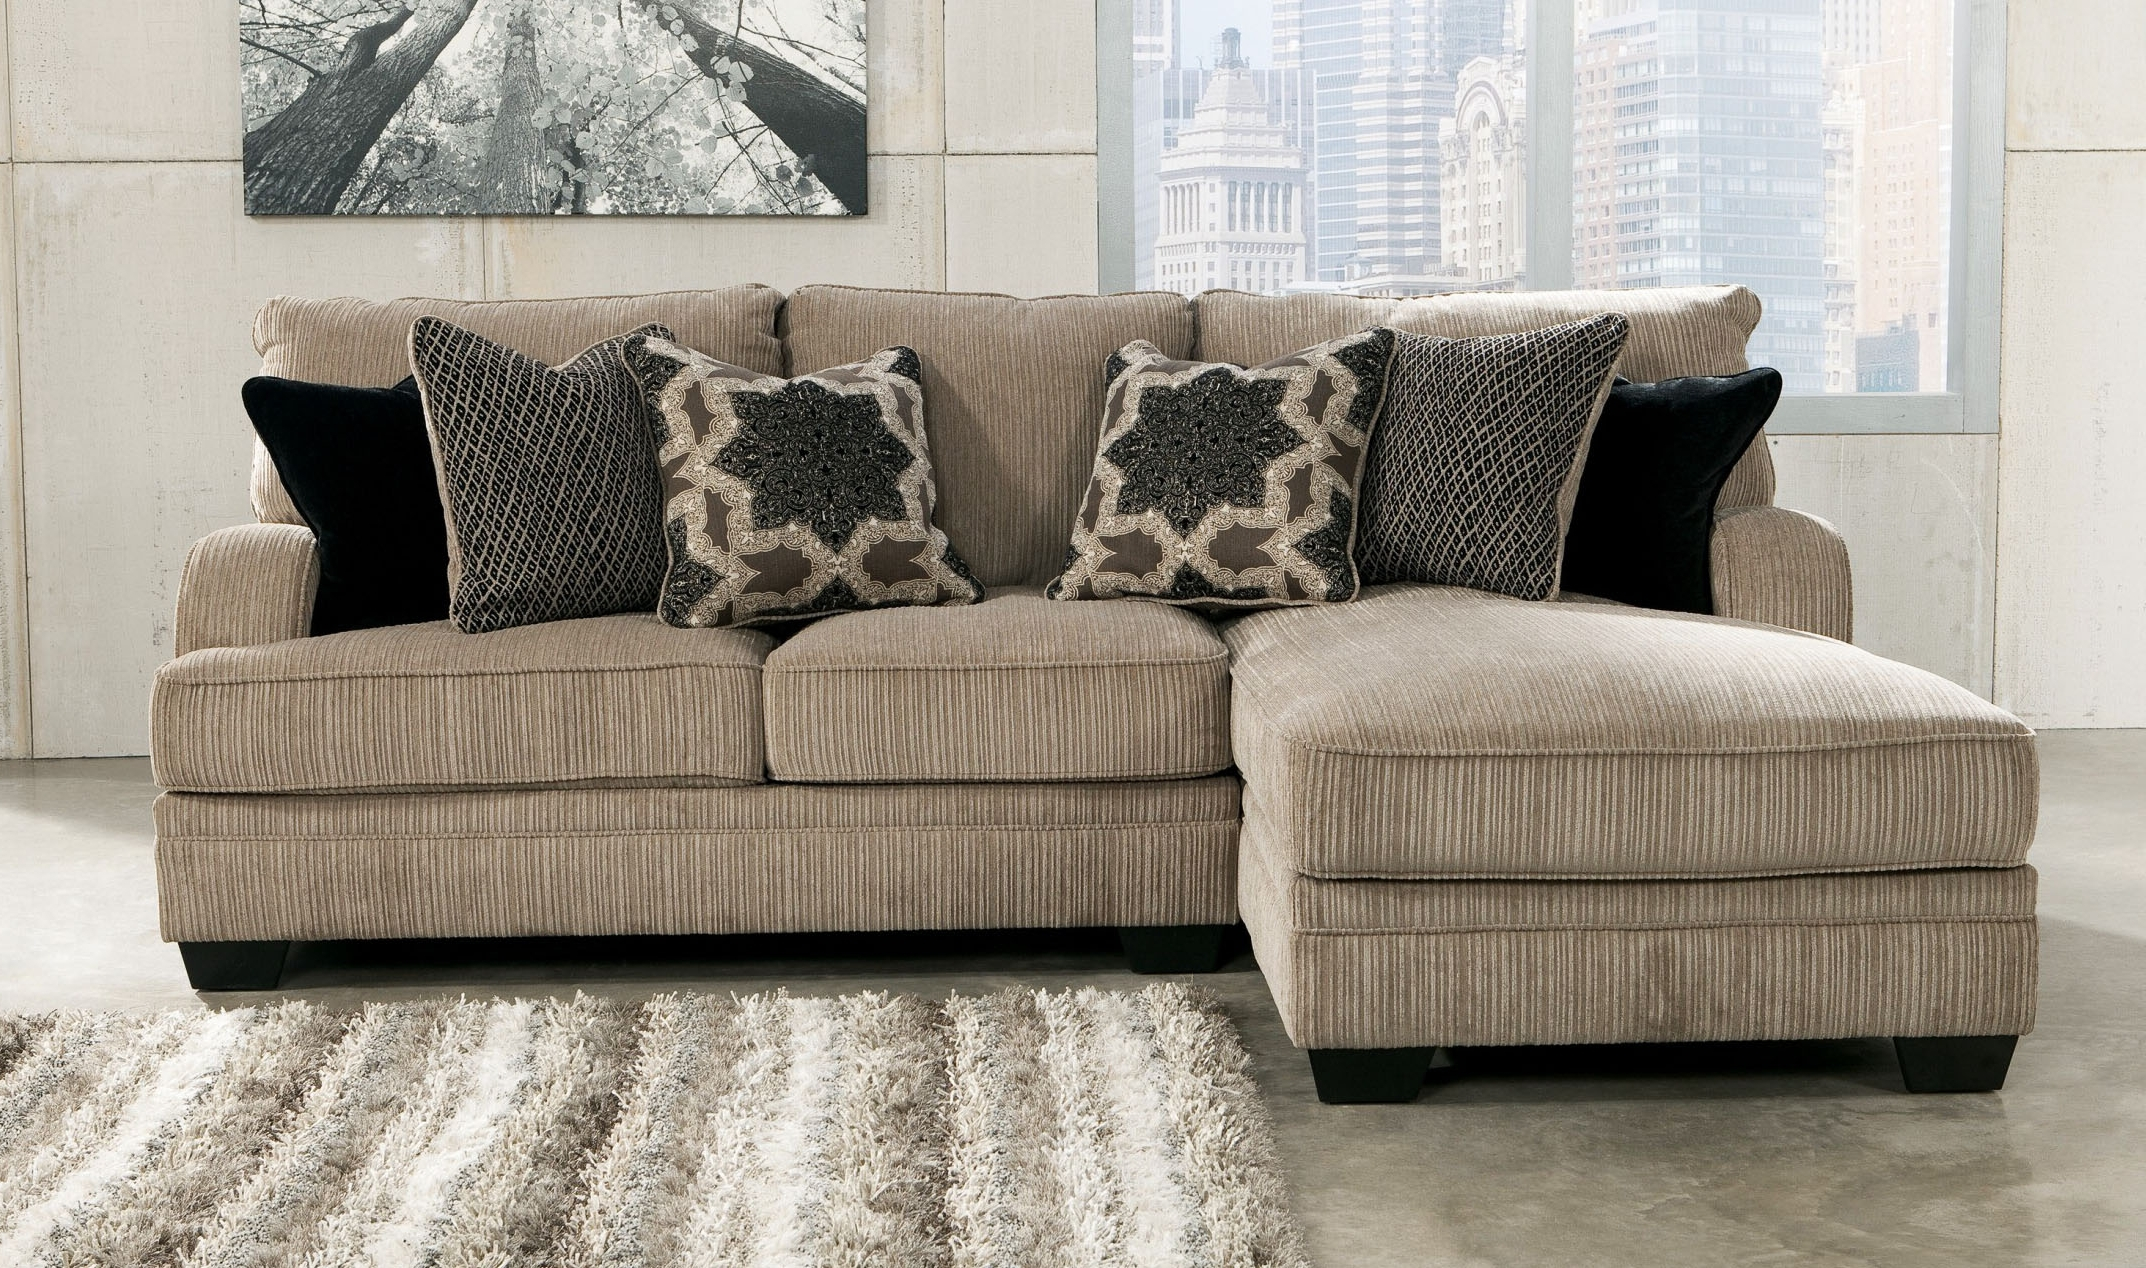 Well Known Sectional Sofas For Small Areas Intended For Modern Sectional Sofas For Small Spaces (View 18 of 20)